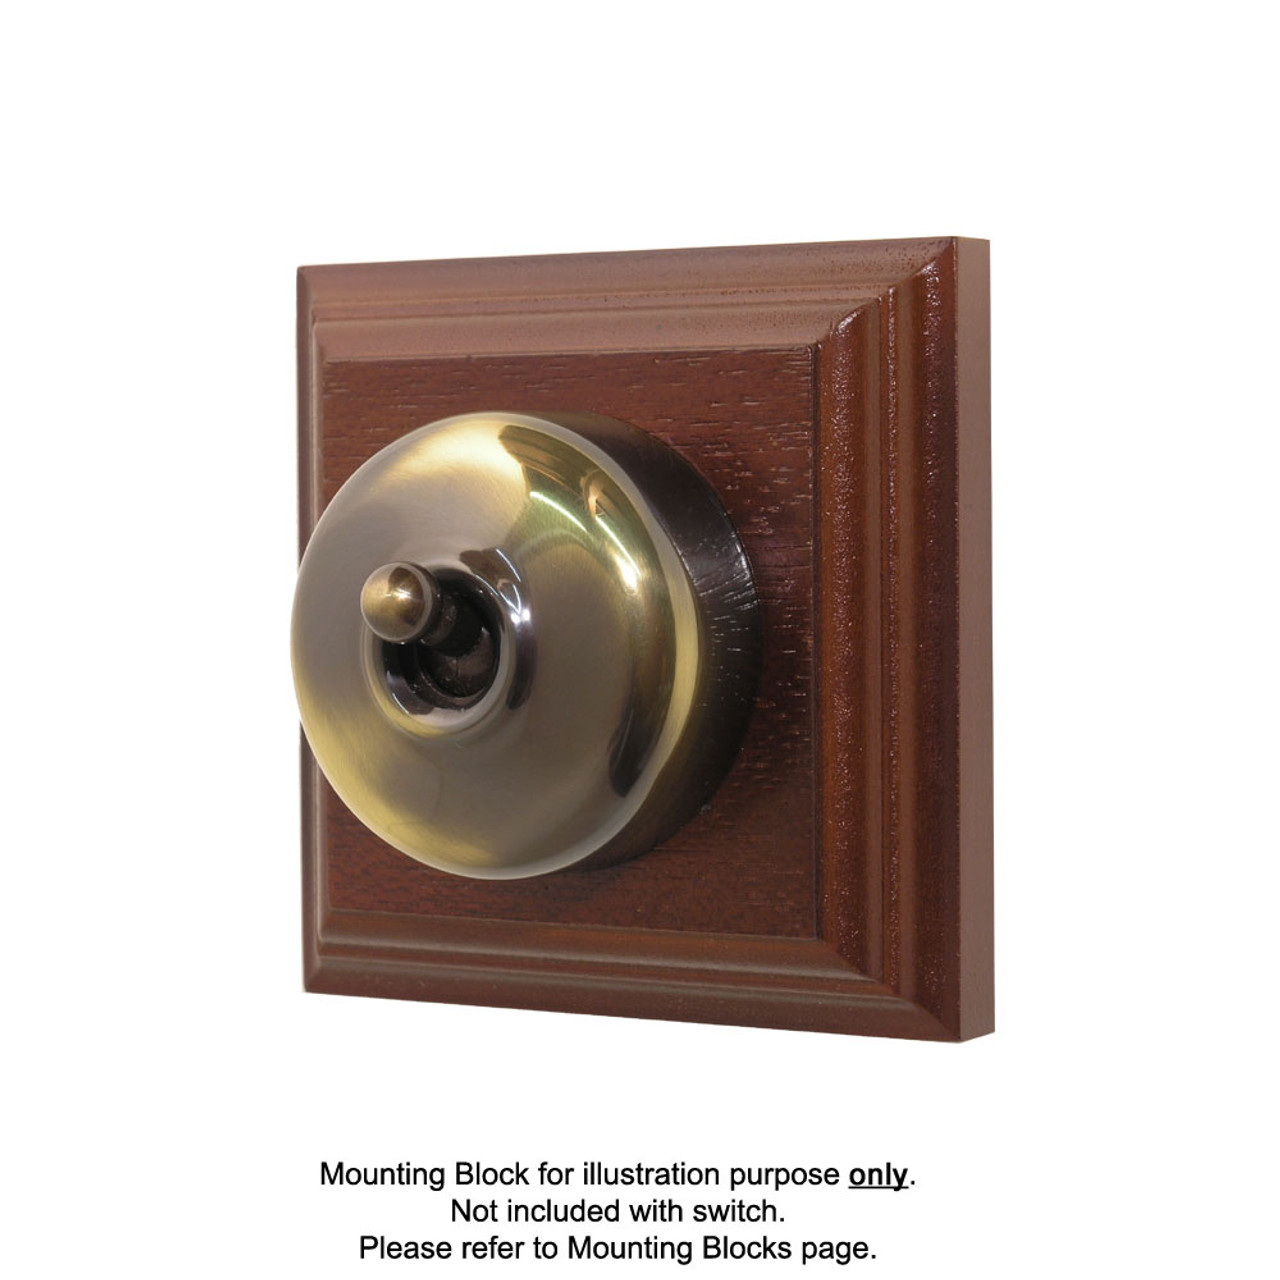 Old Heritage Clipsal Classic Switch Smooth Covered - Antique Brass